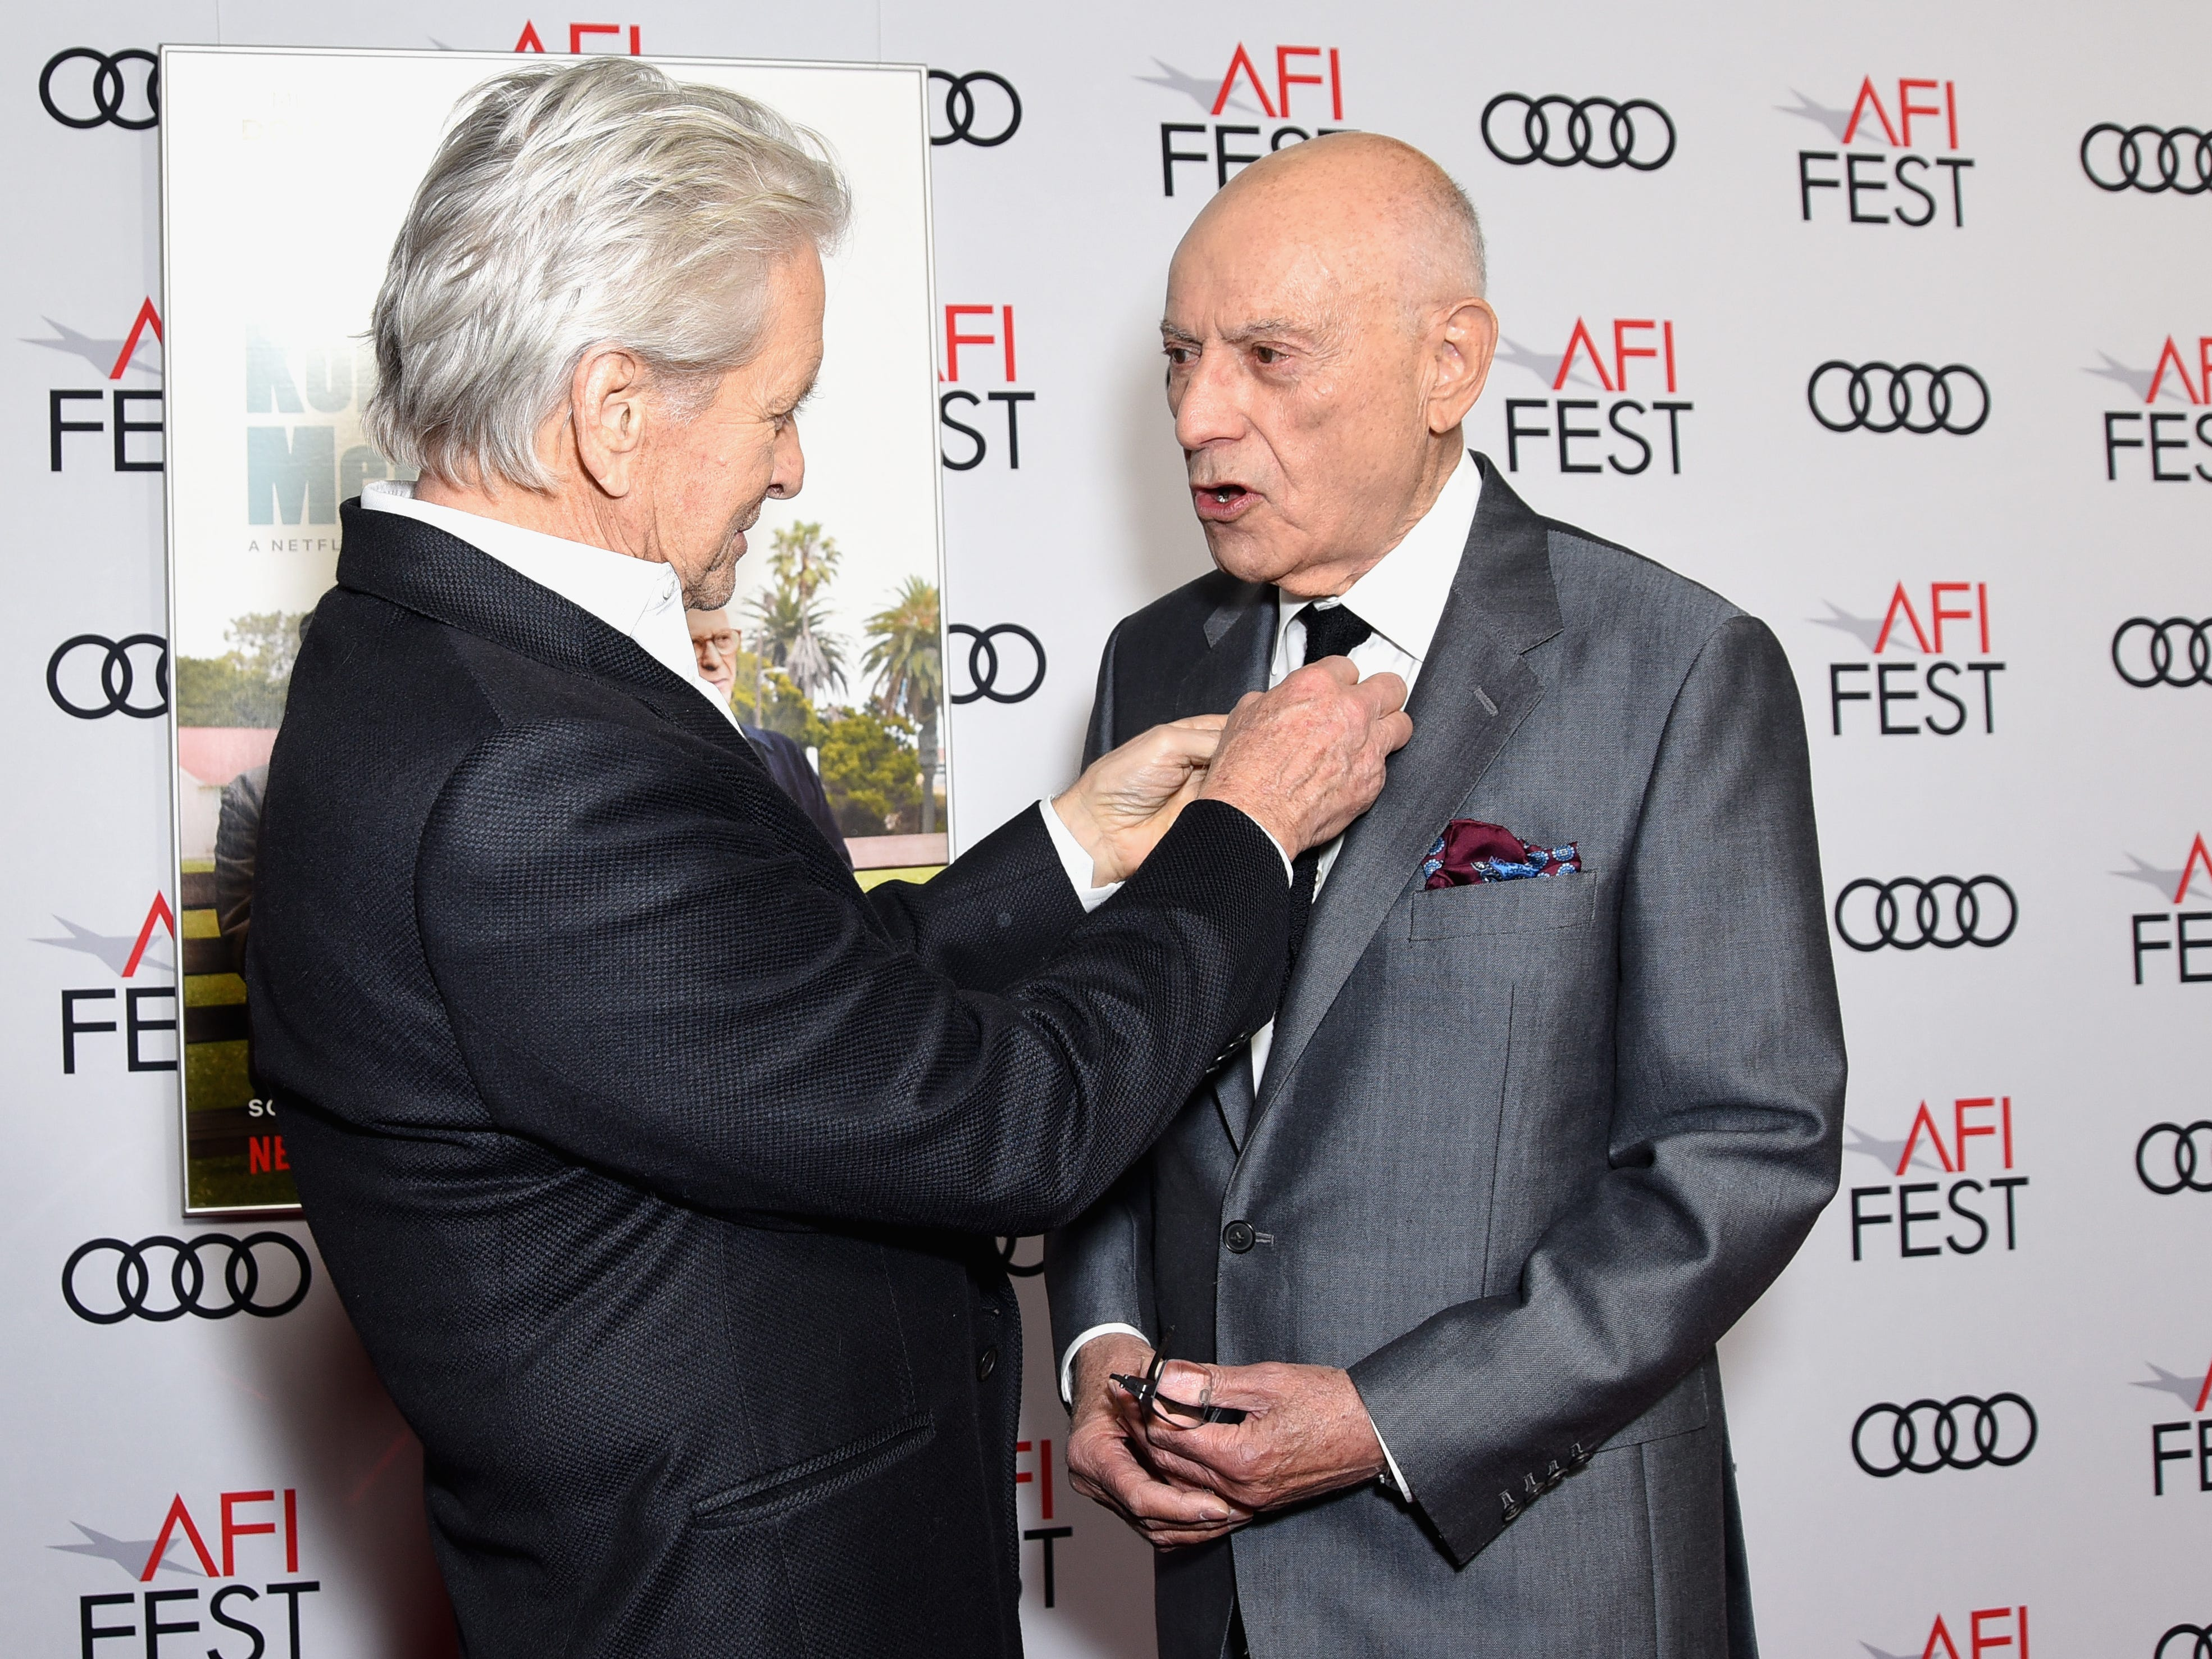 "HOLLYWOOD, CA - NOVEMBER 10:  Michael Douglas (L) and Alan Arkin attend the Gala Screening of ""The Kominsky Method"" at AFI FEST 2018 Presented By Audi at TCL Chinese Theatre on November 10, 2018 in Hollywood, California.  (Photo by Presley Ann/Getty Images for AFI) ORG XMIT: 775252145 ORIG FILE ID: 1060102530"